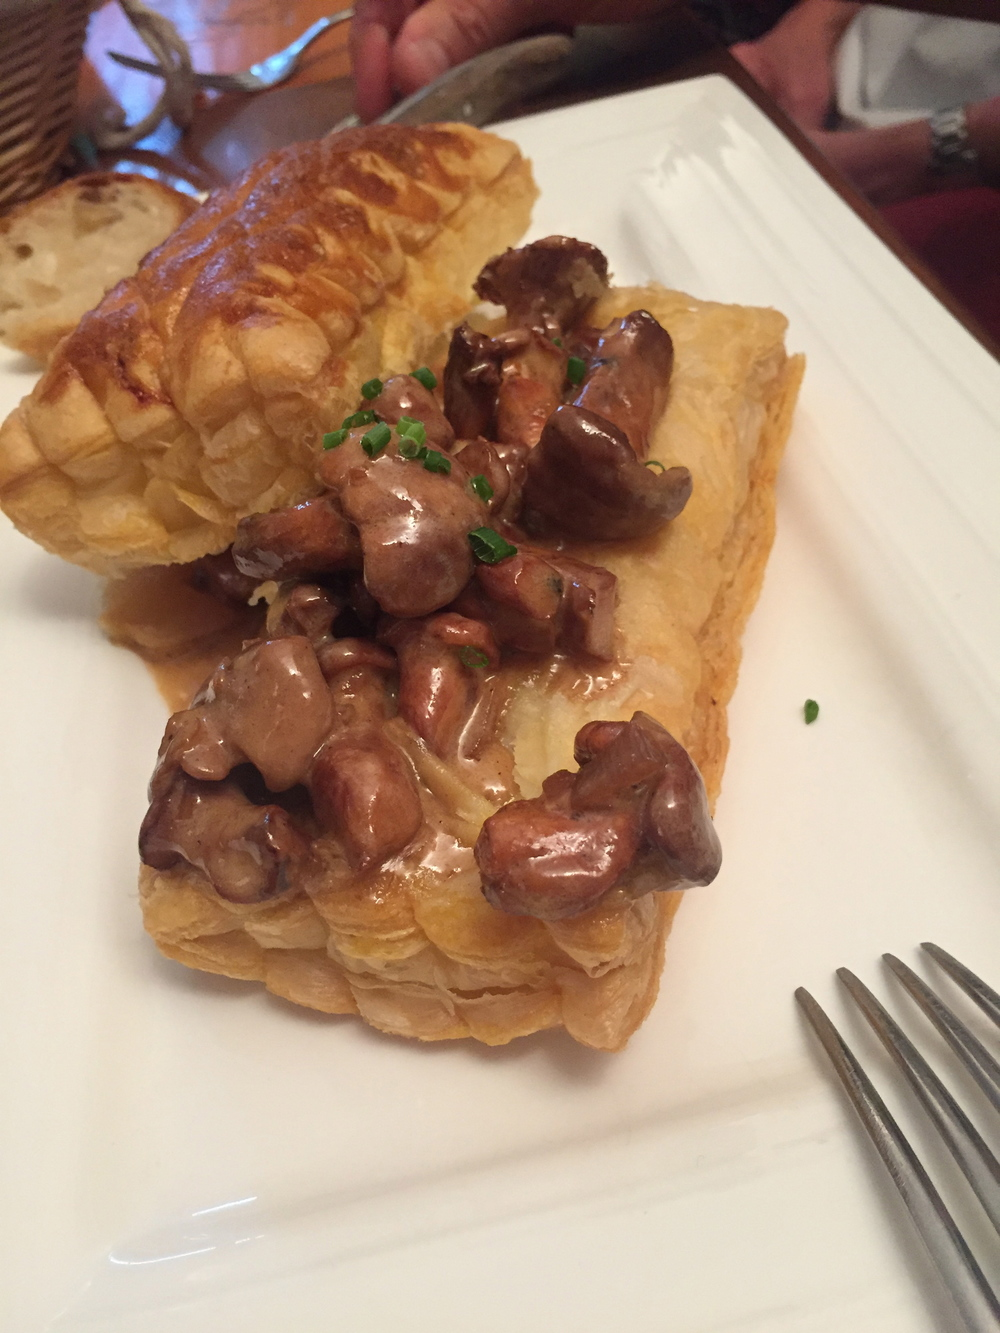 Girolles on puff pastry...